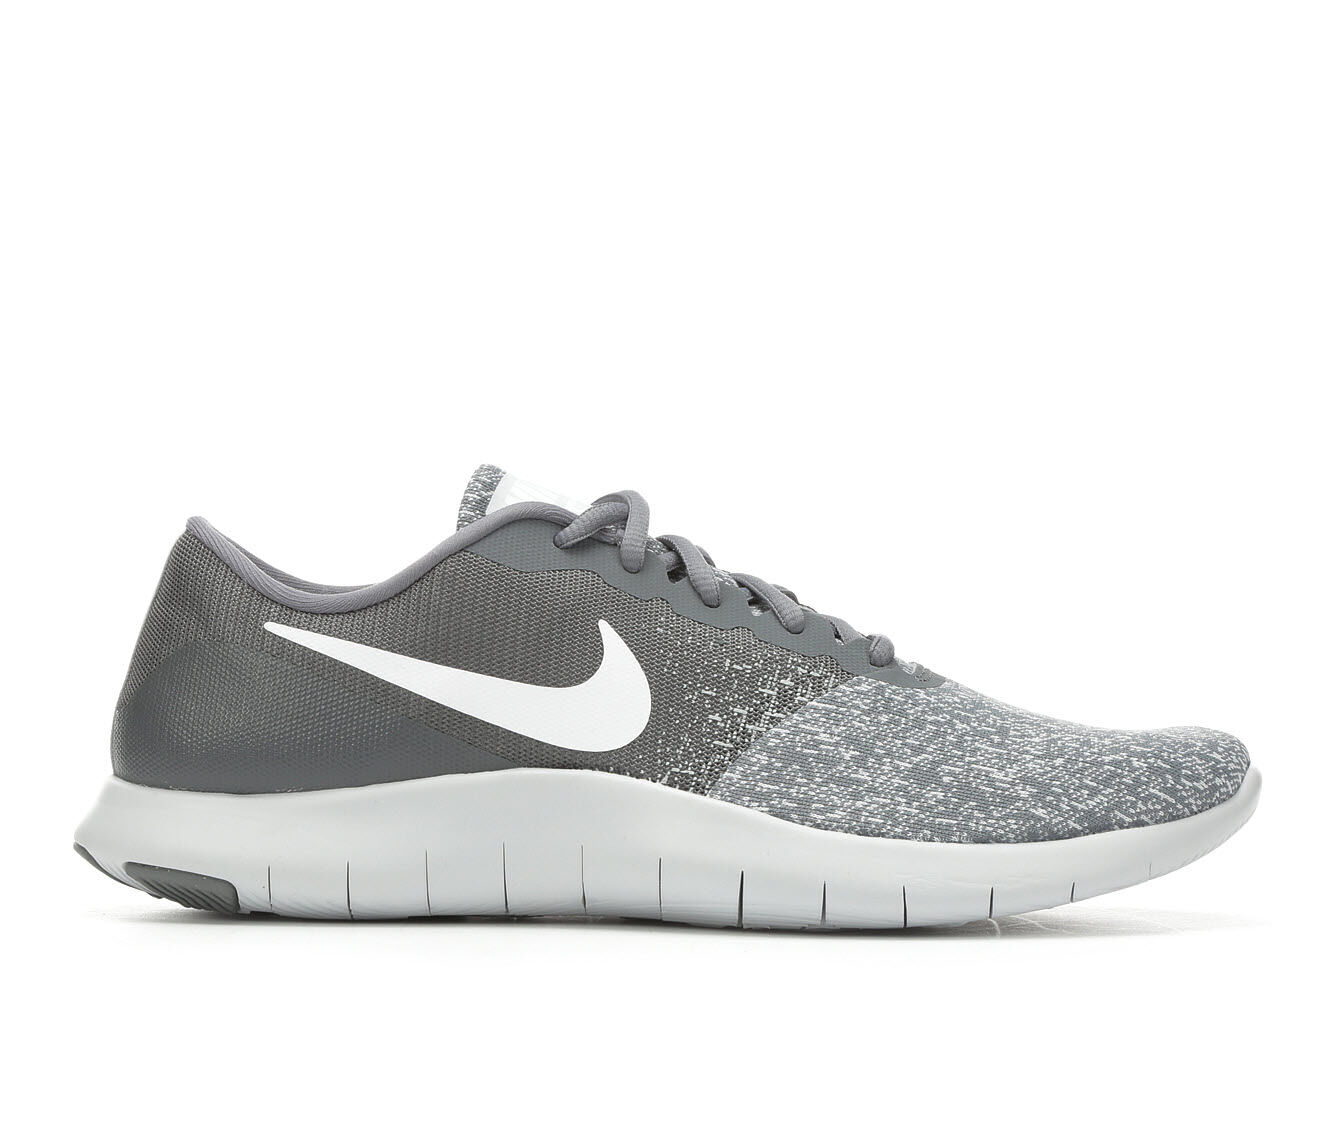 Men's Nike Flex Contact Running Shoes